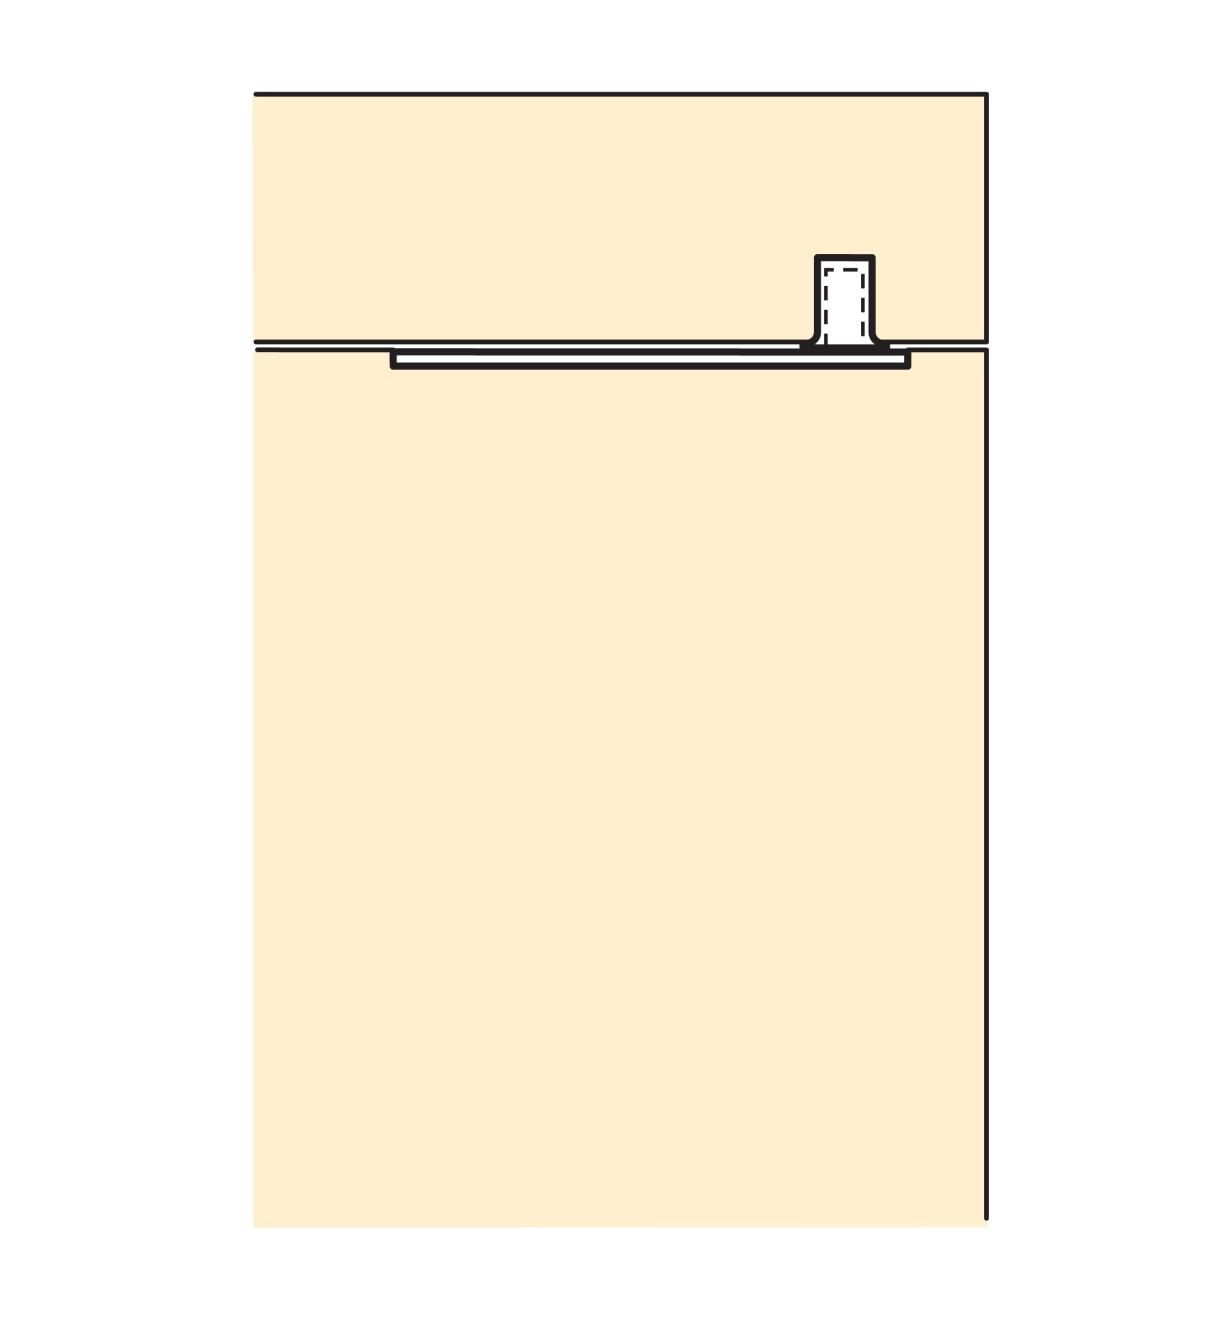 Illustration of door joined to cabinet with Pivot Hinges